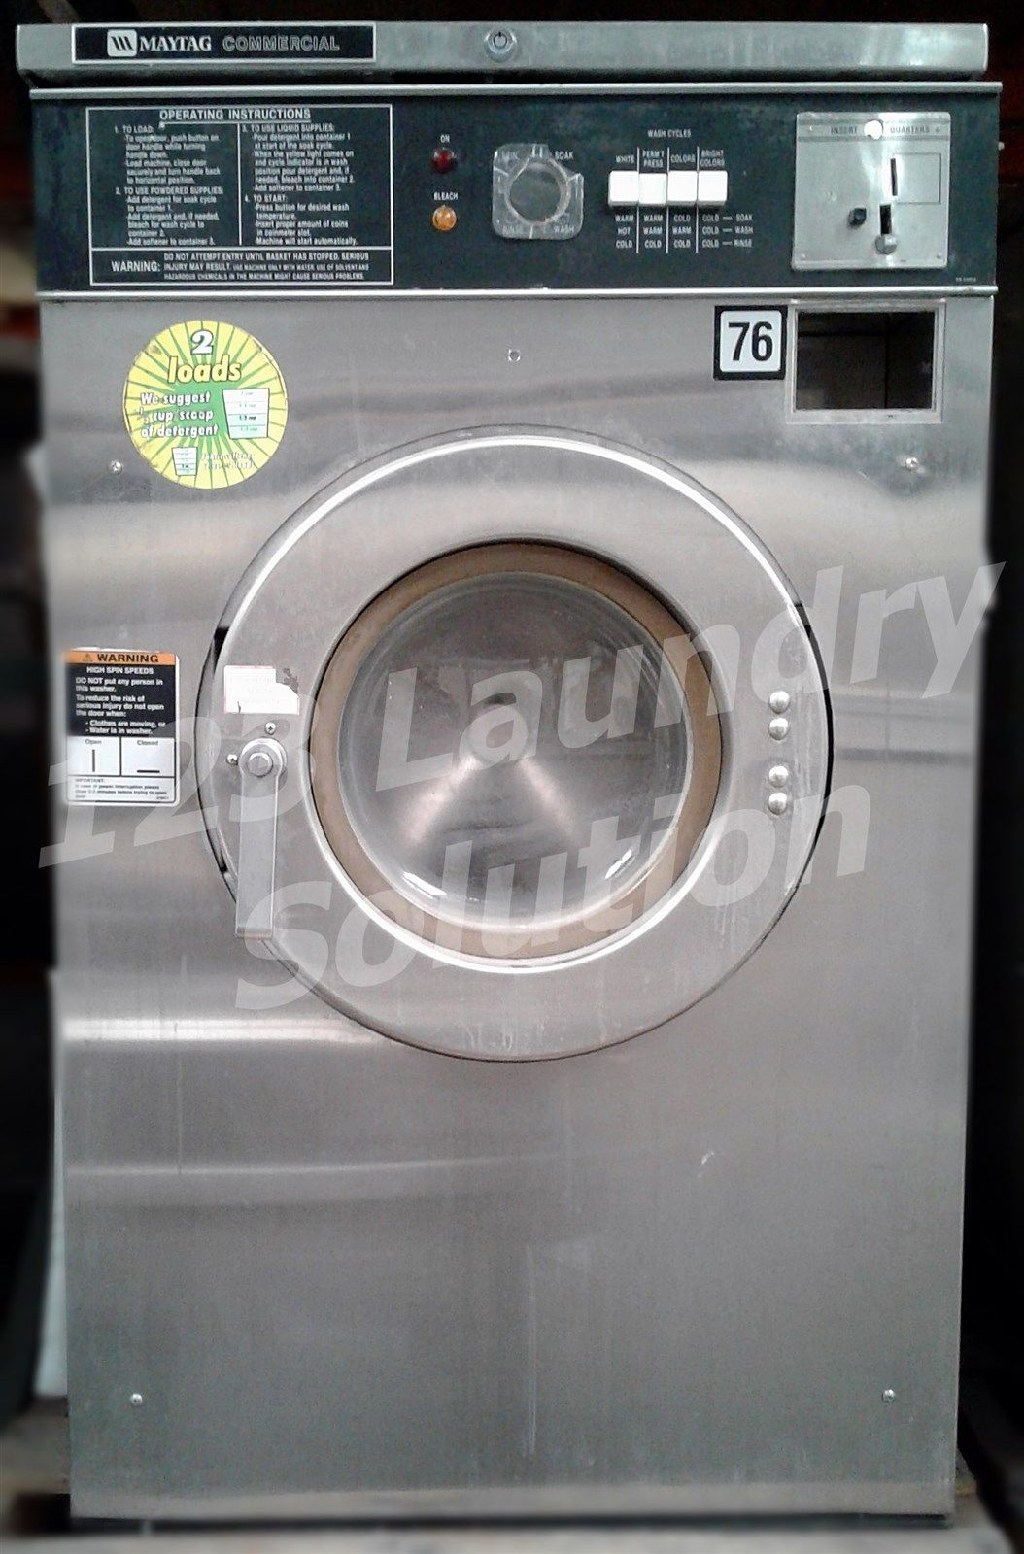 Coin Laundry Maytag Front Load Washer Coin Op 18LB AT18MC1 3PH Stainless Steel Used